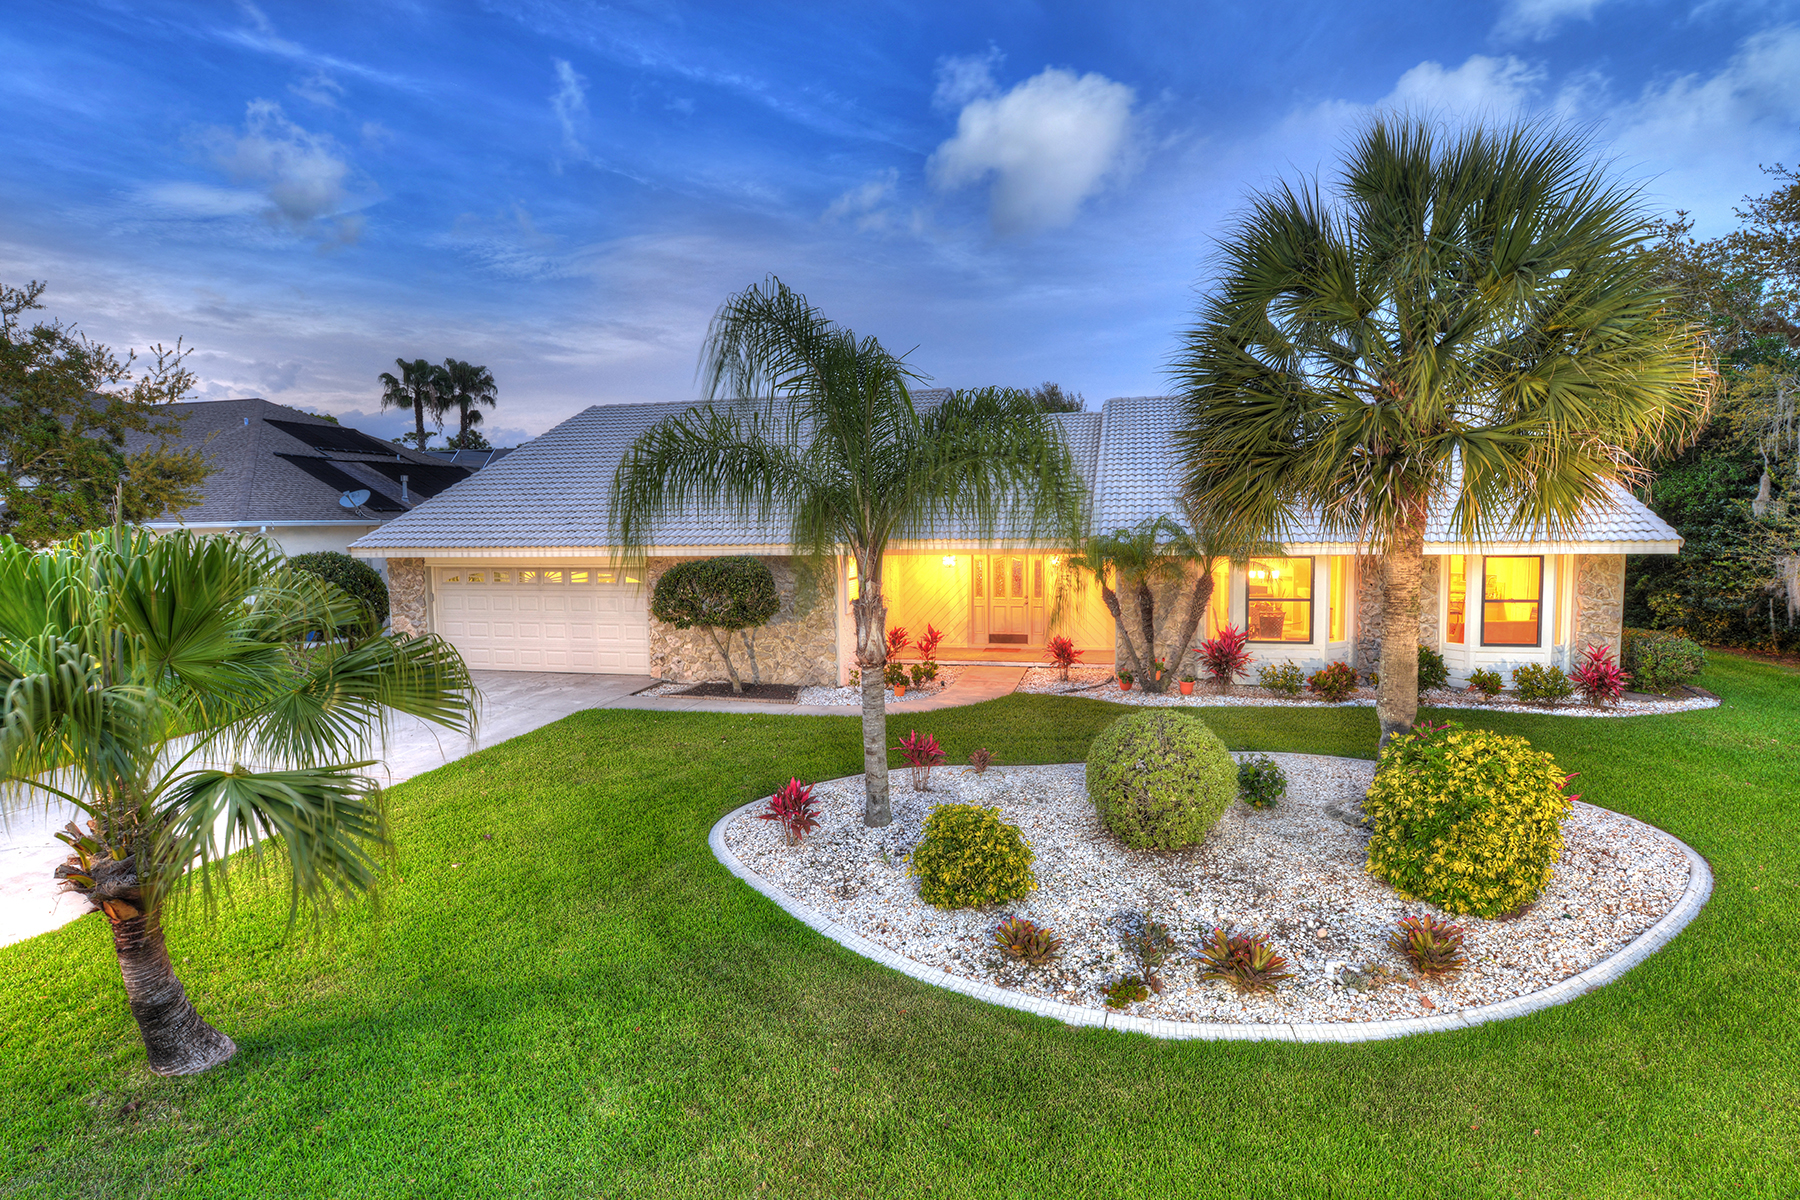 Single Family Home for Sale at SPRUCE CREEK AND THE BEACHES 1828 Wiley Post Trl Port Orange, Florida, 32128 United States